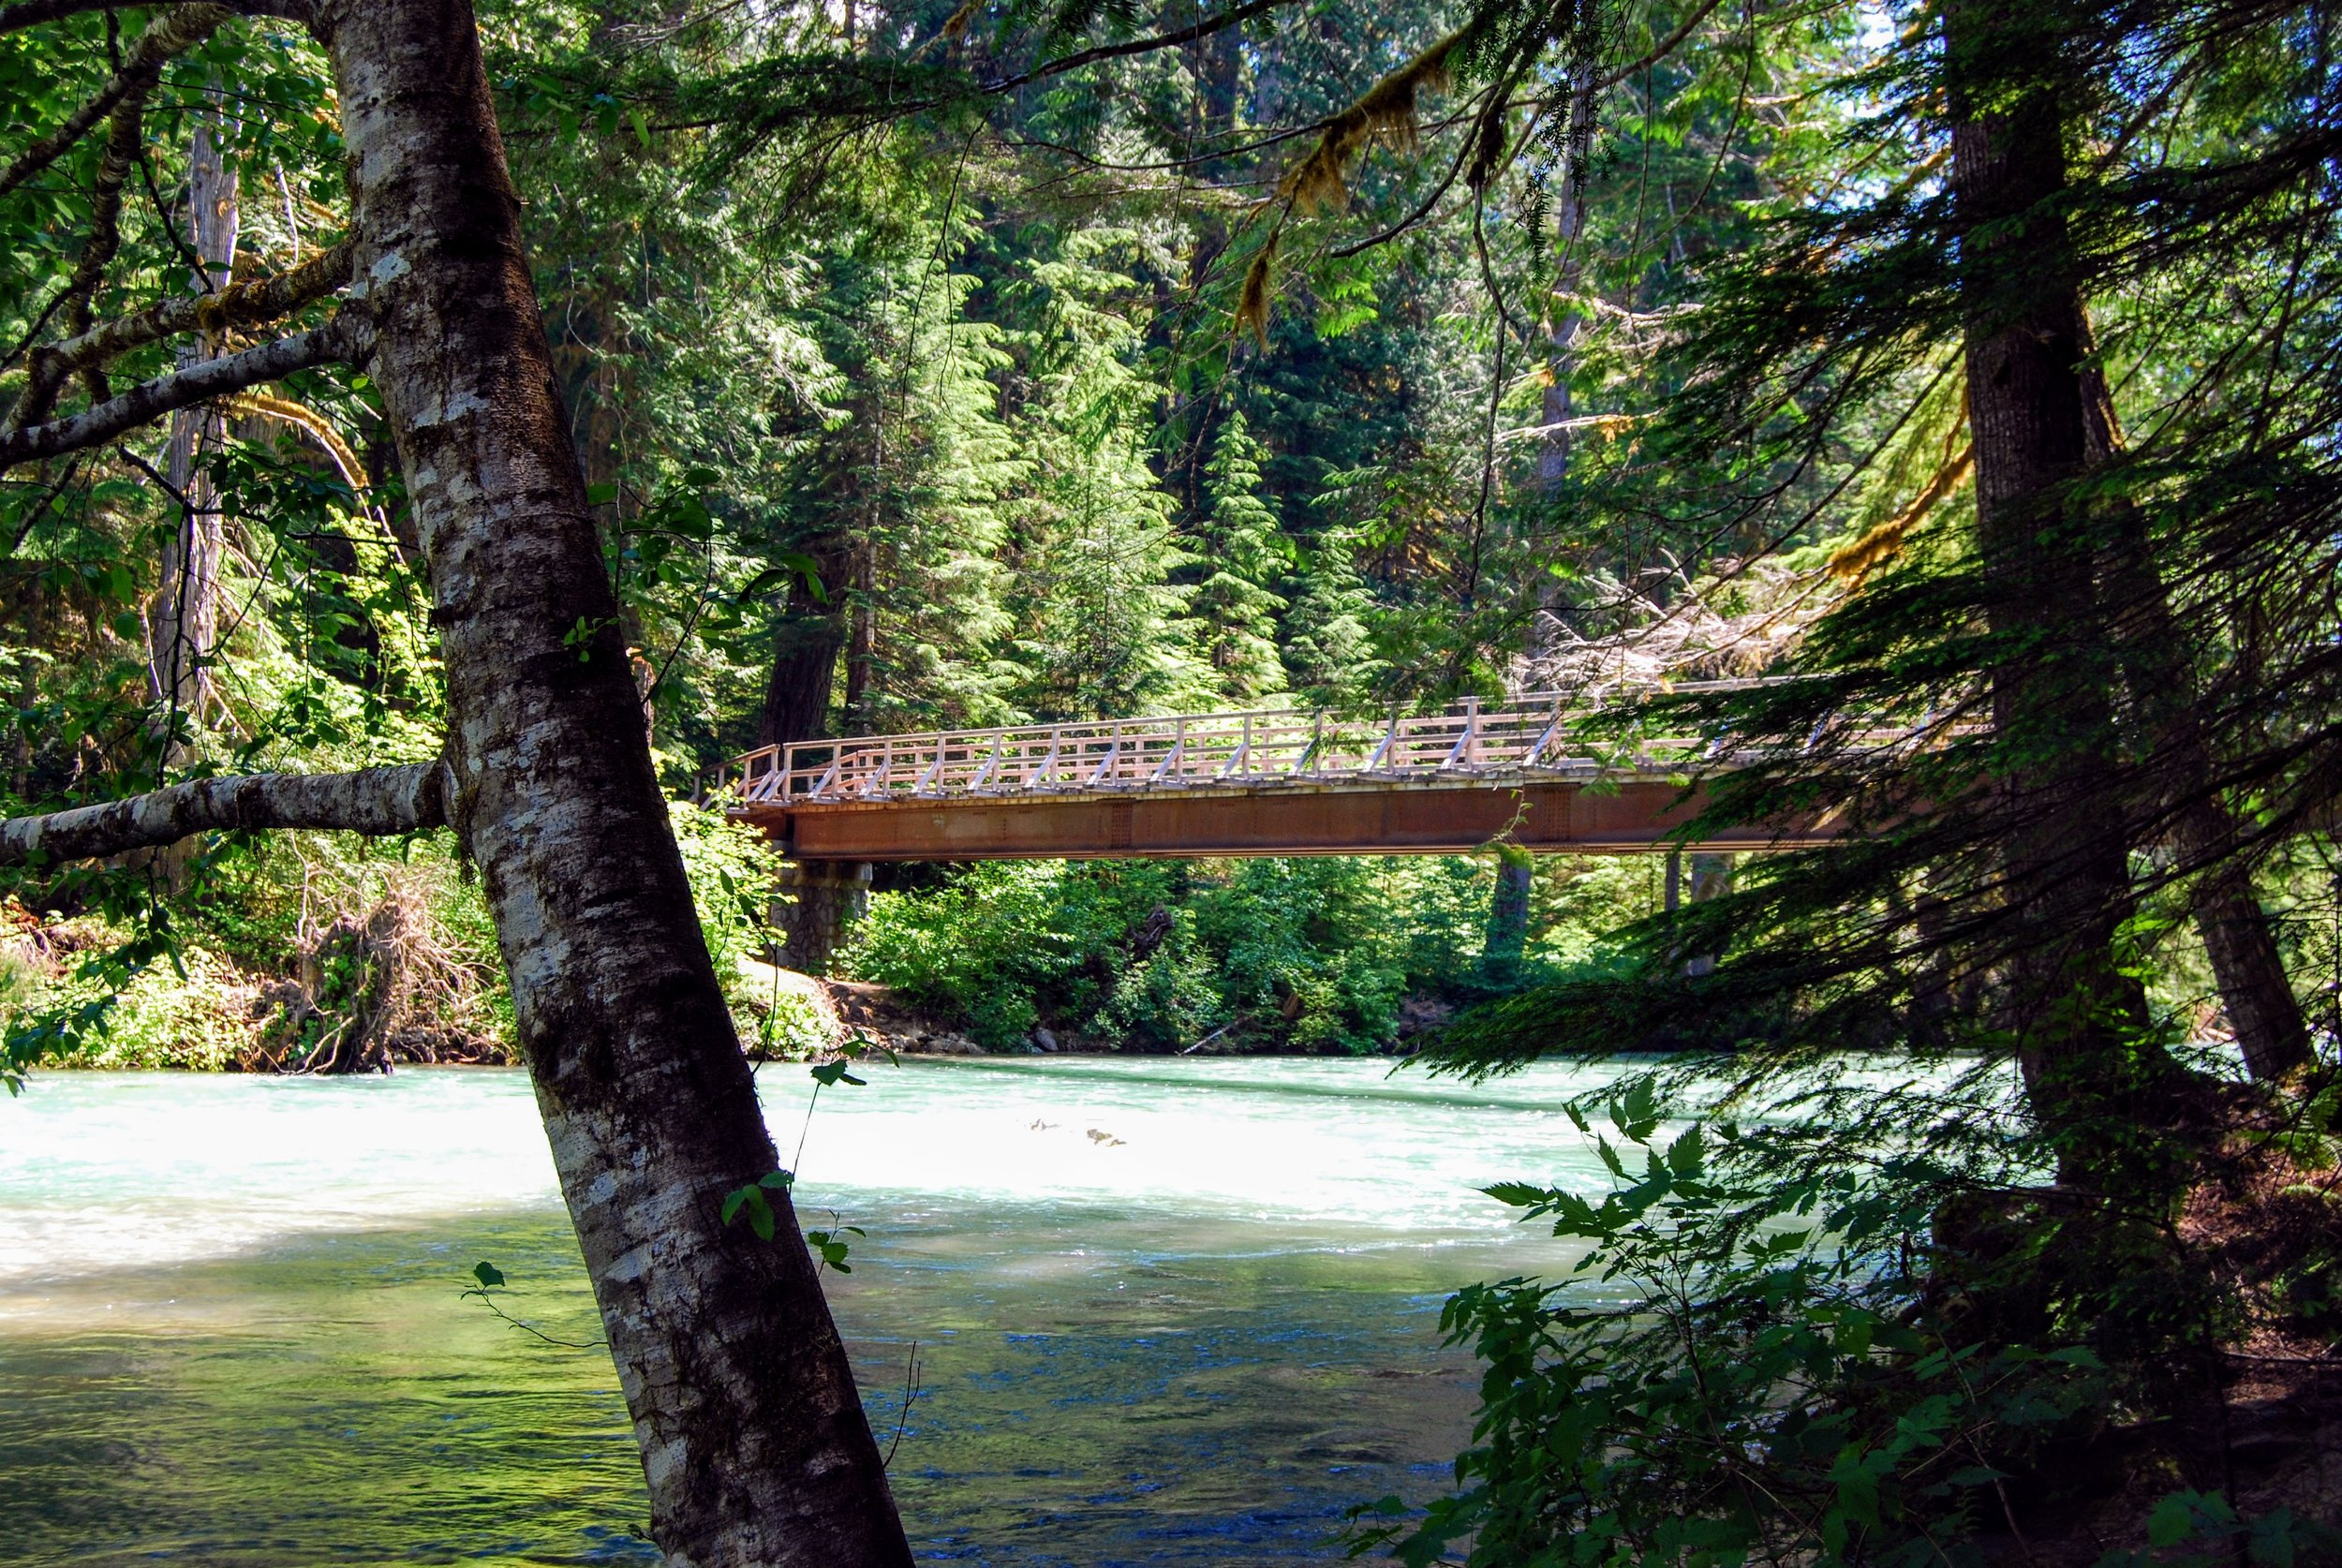 Bridge at about the 2 mile mark